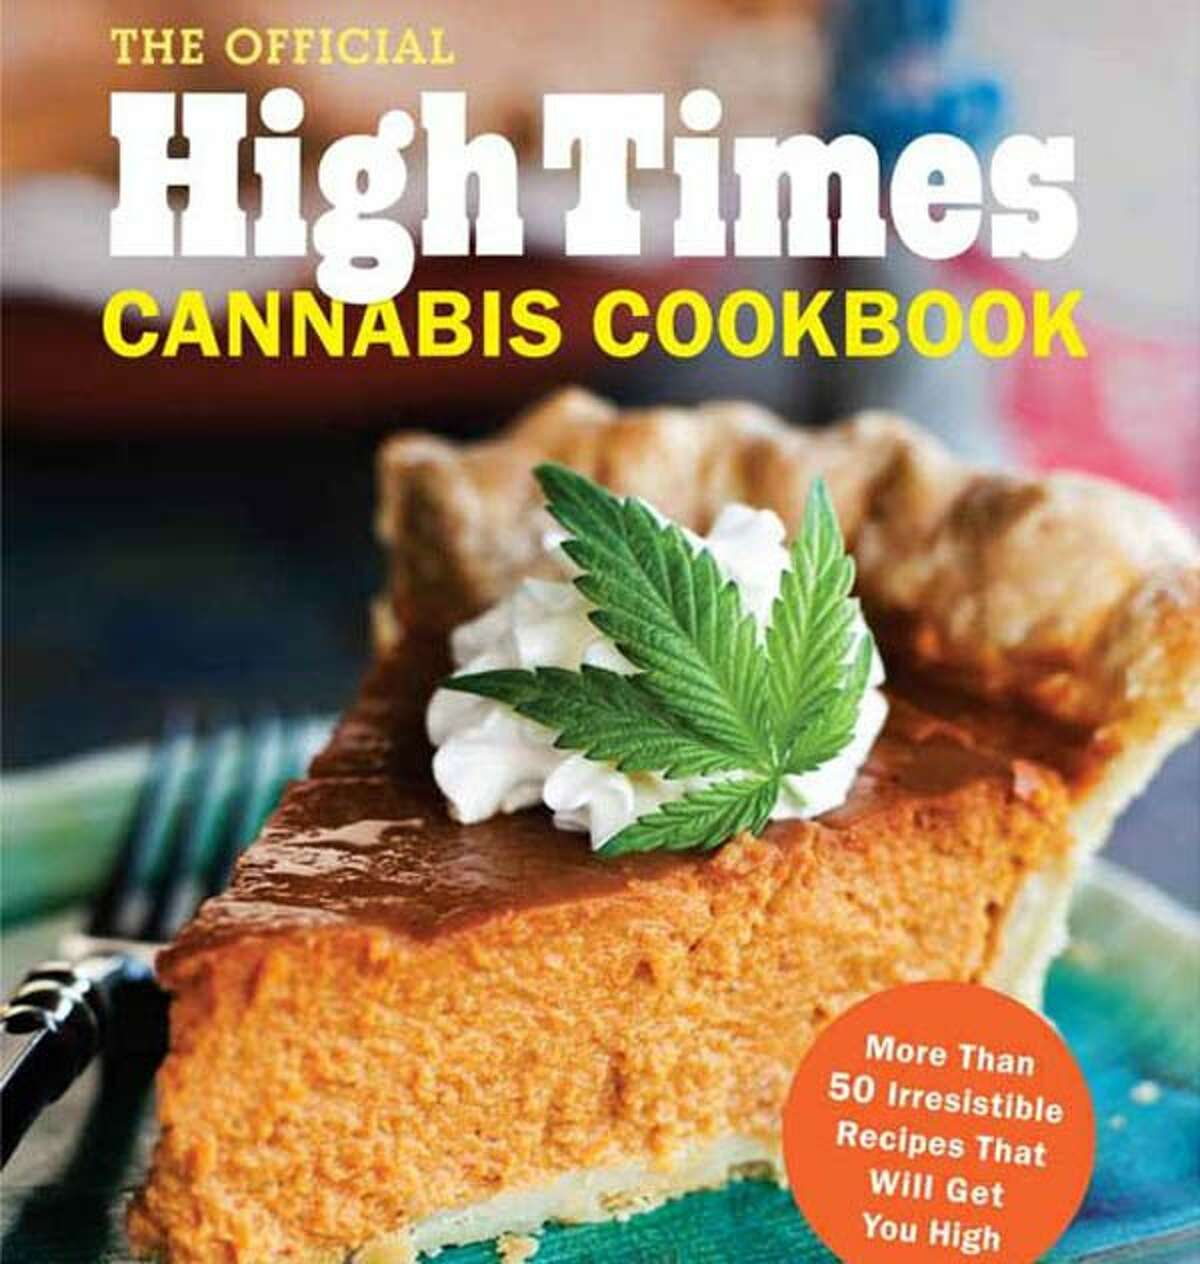 So long, Twinkies. The Official High Times Cookbook released this year covers the fatty munchy desserts, but also goes into more nutritious items for our obese times.